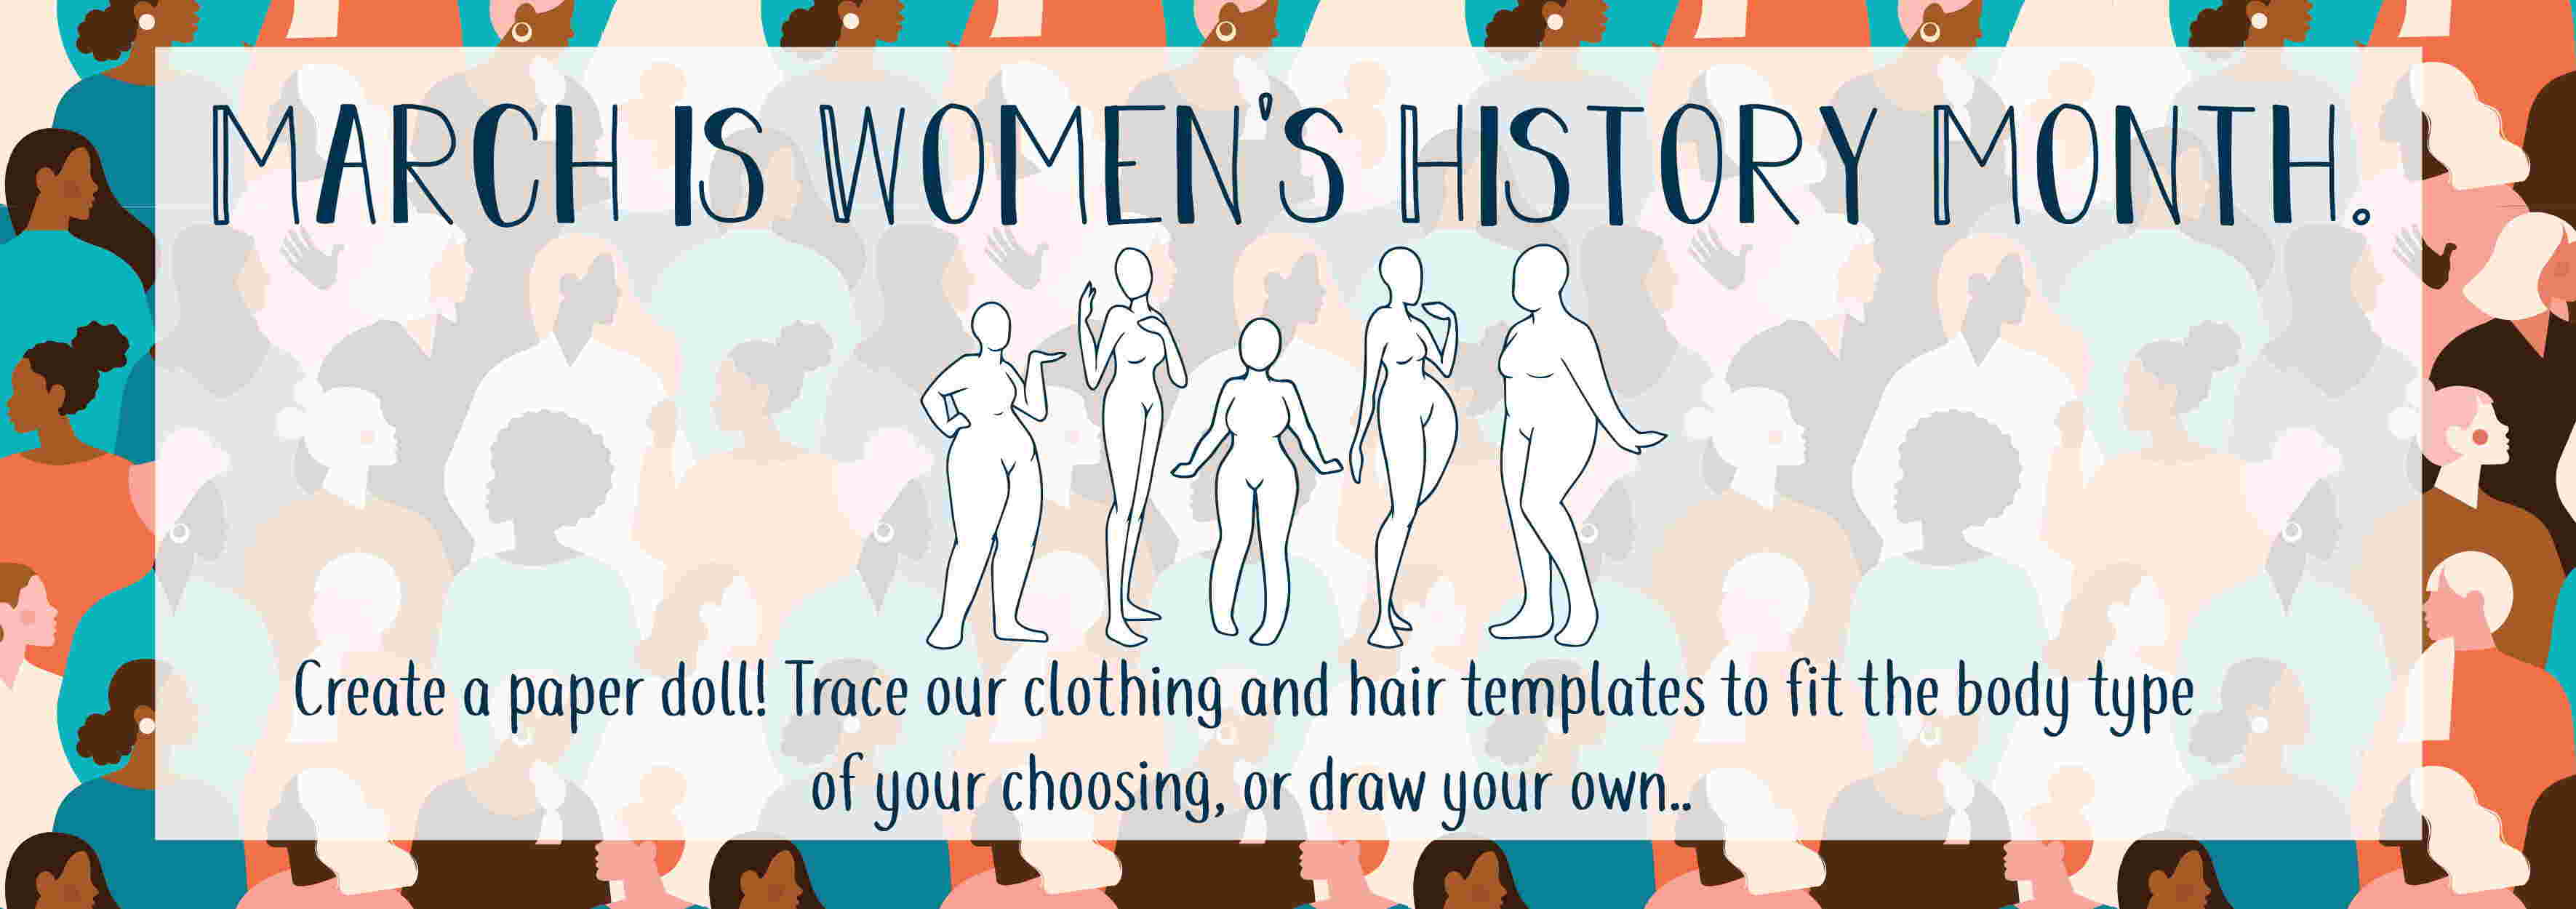 women's history month 2020 banner